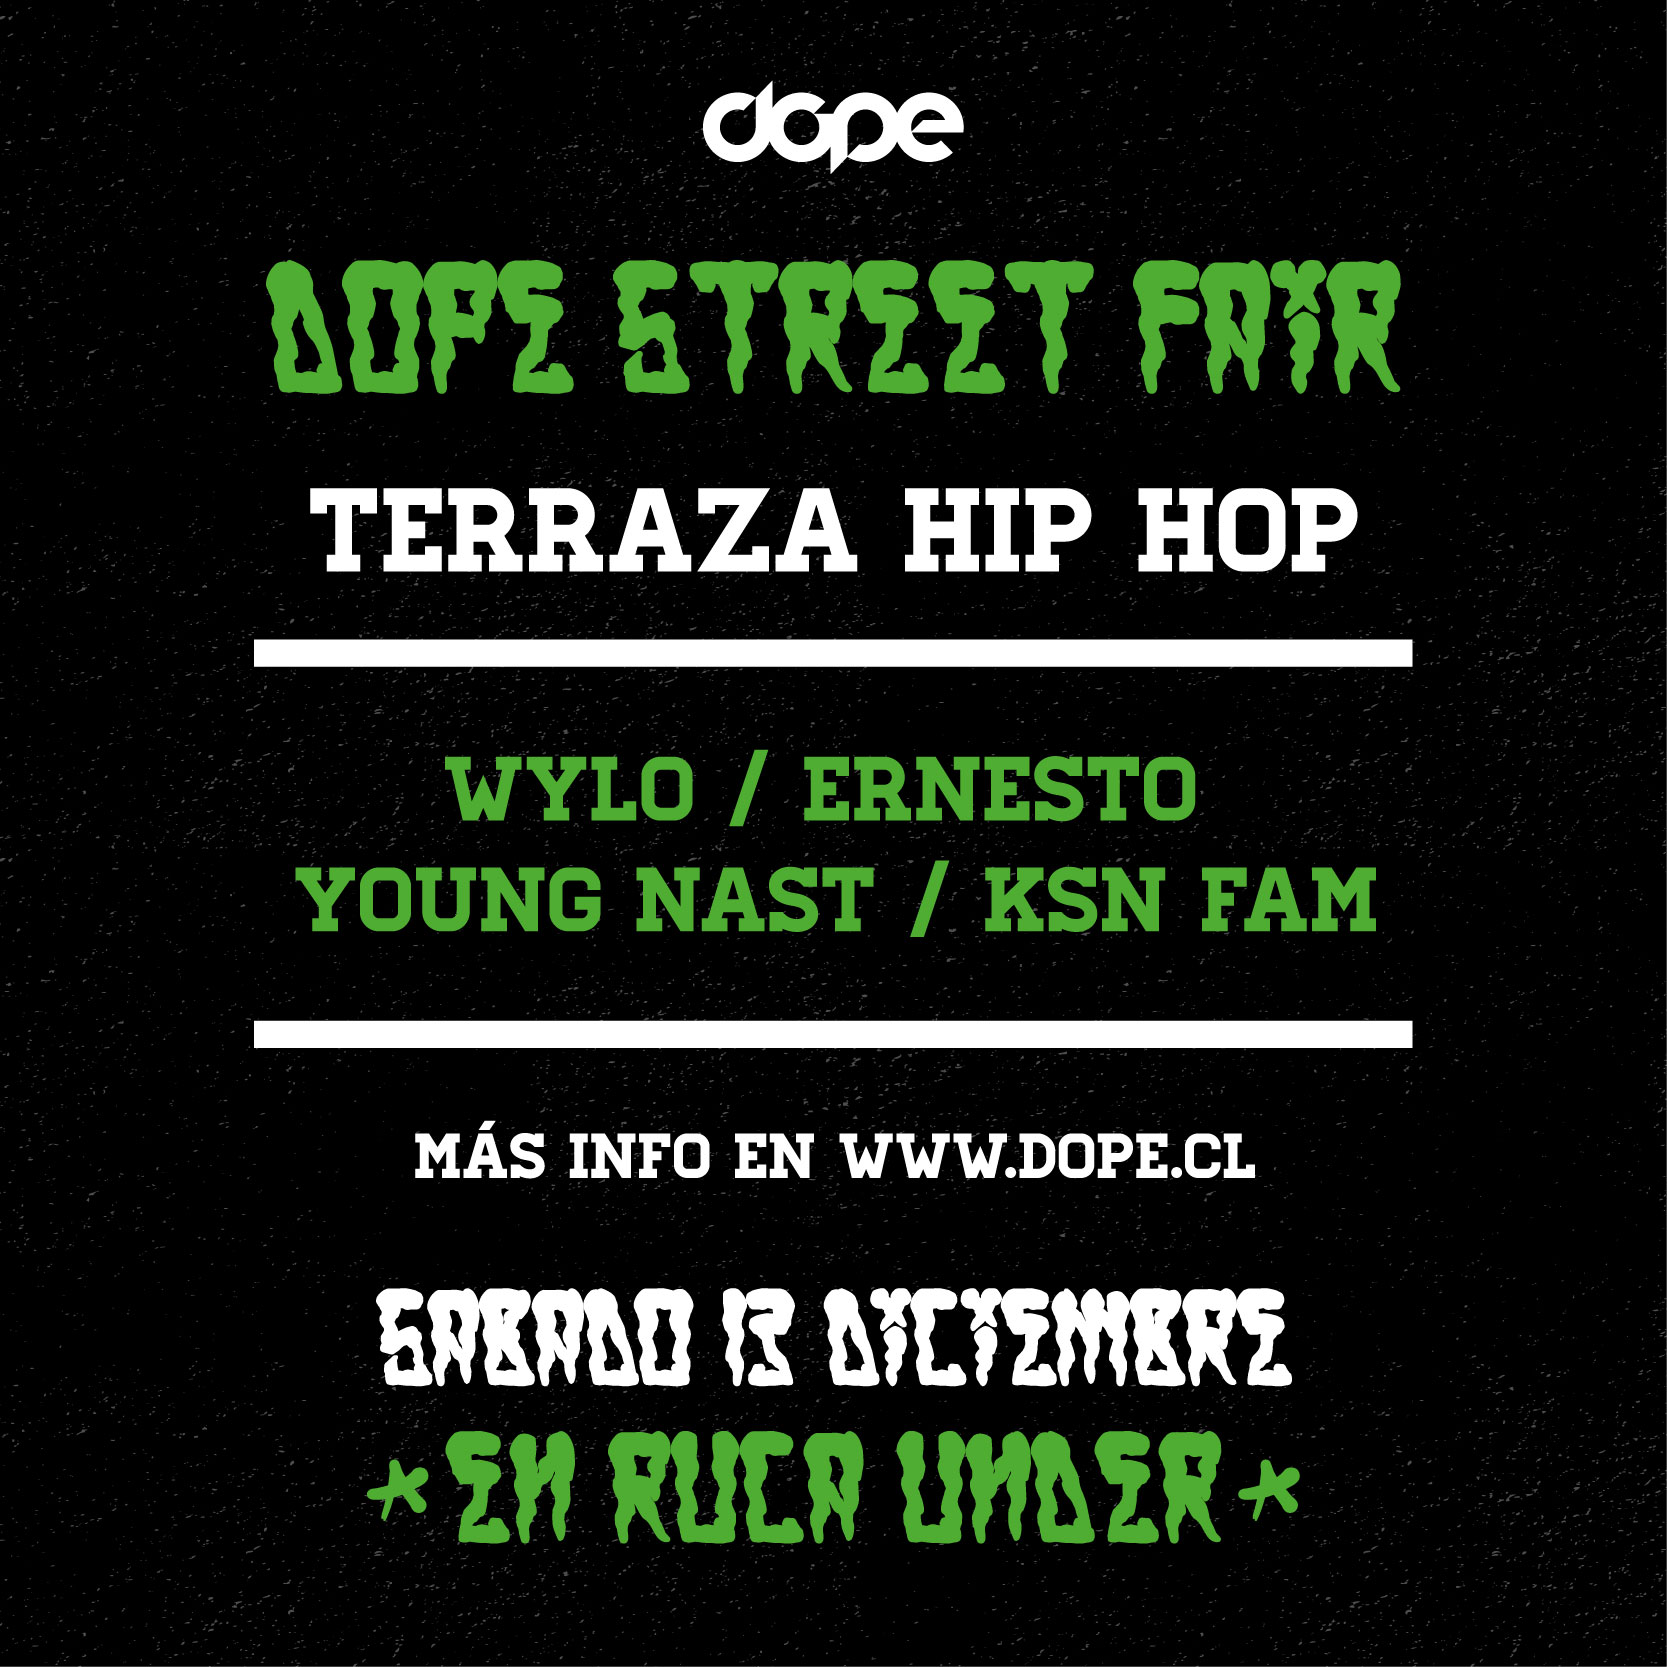 dope-evento banner-04